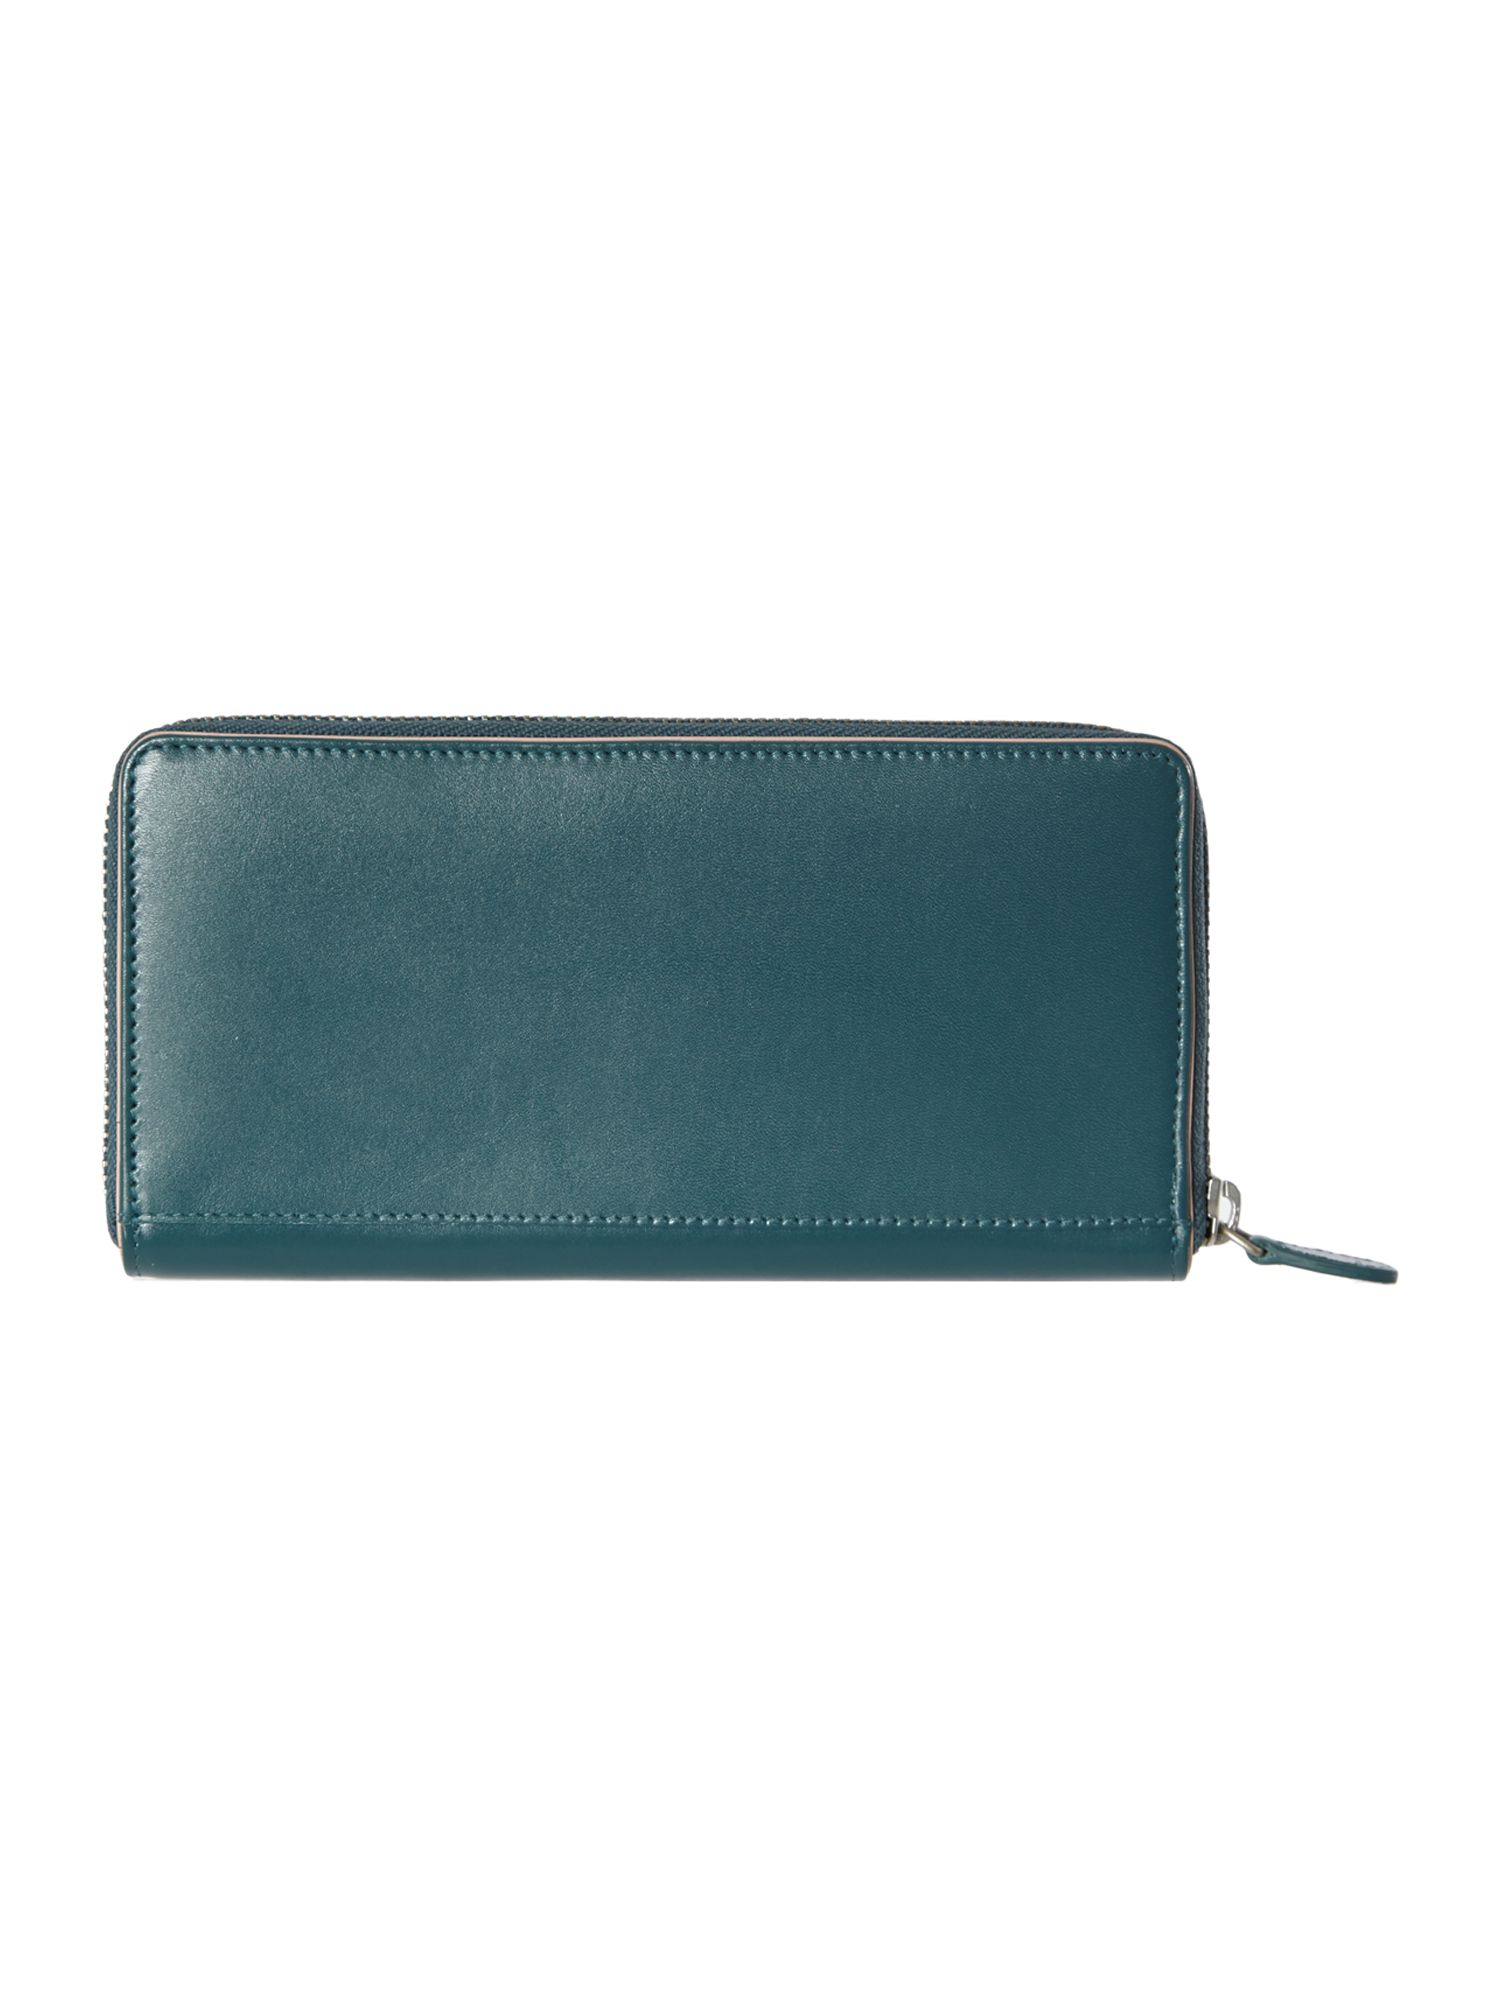 Blair blue large zip around matinee purse